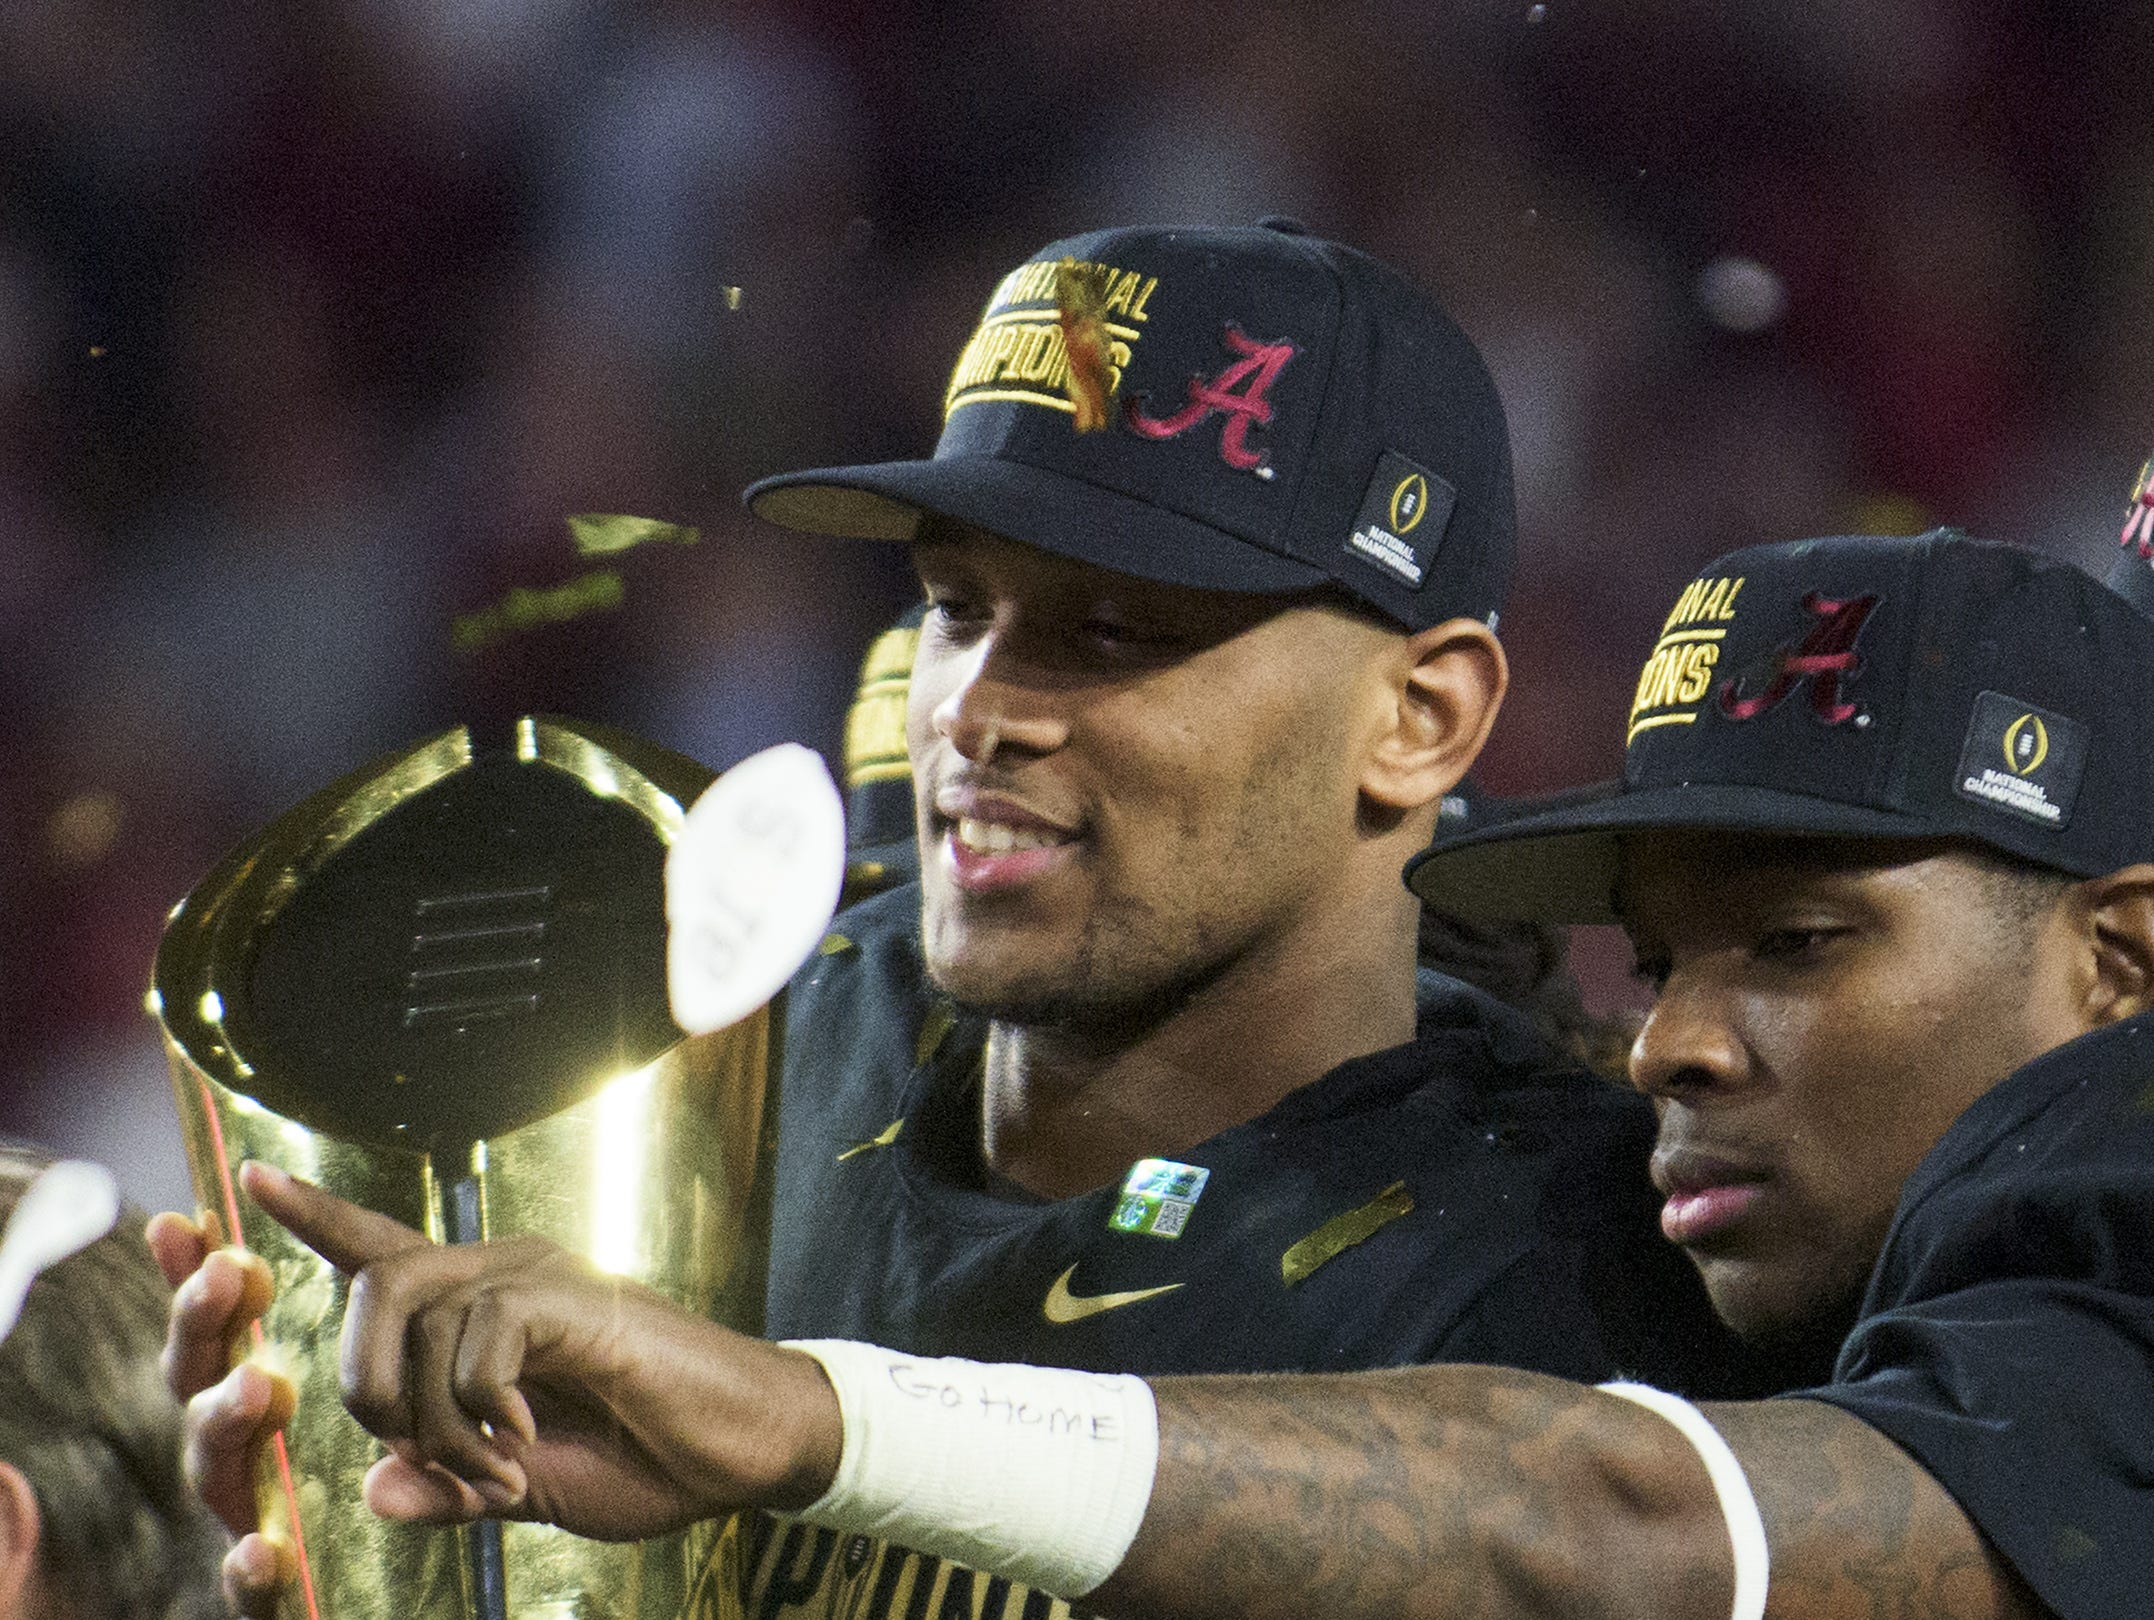 Alabama tight end O.J. Howard (88) and defensive back Eddie Jackson (4) celebrate with the championship trophy following the College Football Playoff Championship Game on Monday January 11, 2016 at University of Phoenix Stadium in Glendale, Az. (Mickey Welsh / Montgomery Advertiser)